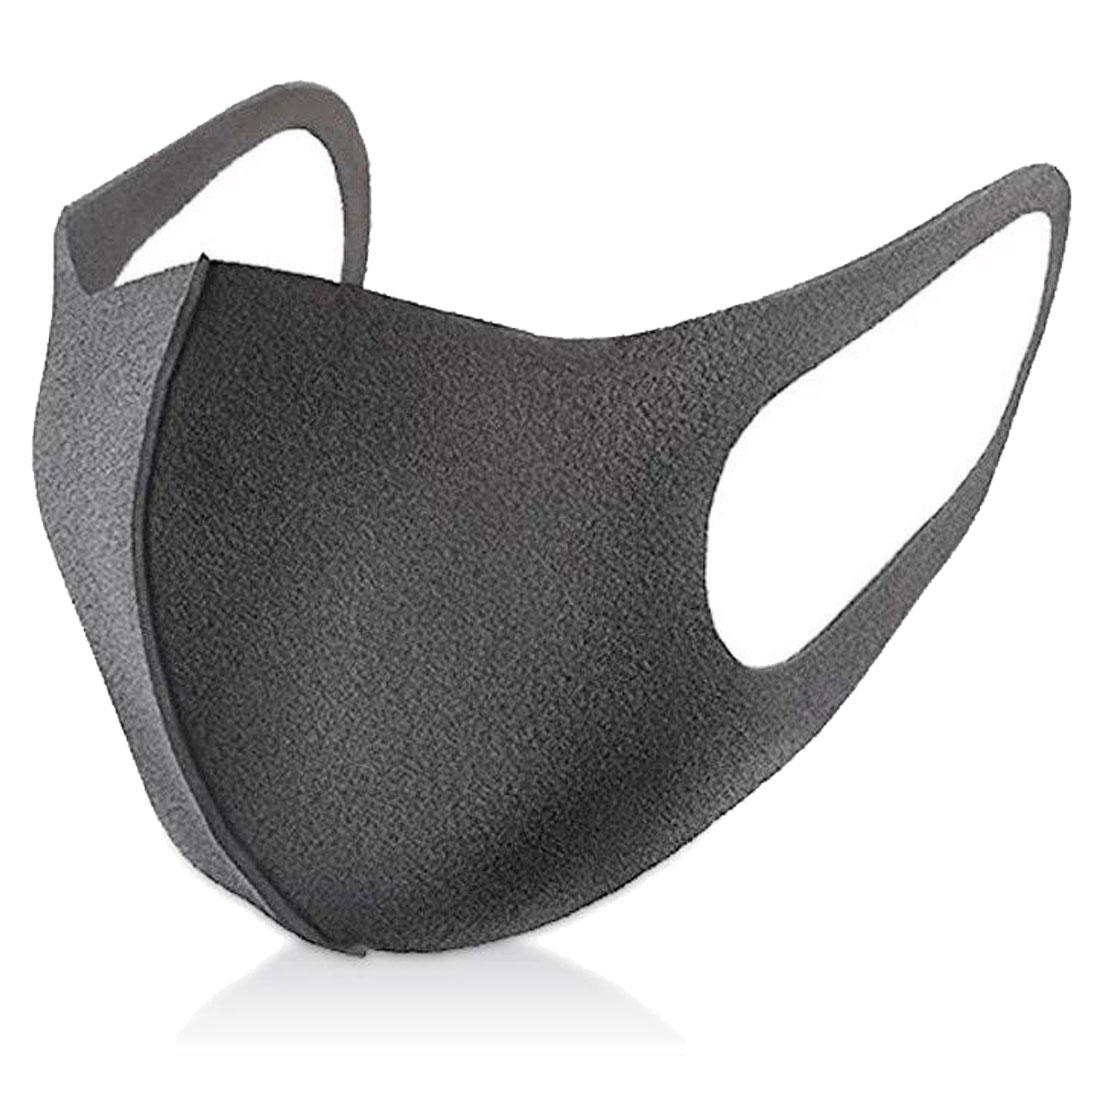 Simple Black Mouth Mask Cotton Men Women Anti Dust Protective Double Washable Many Times